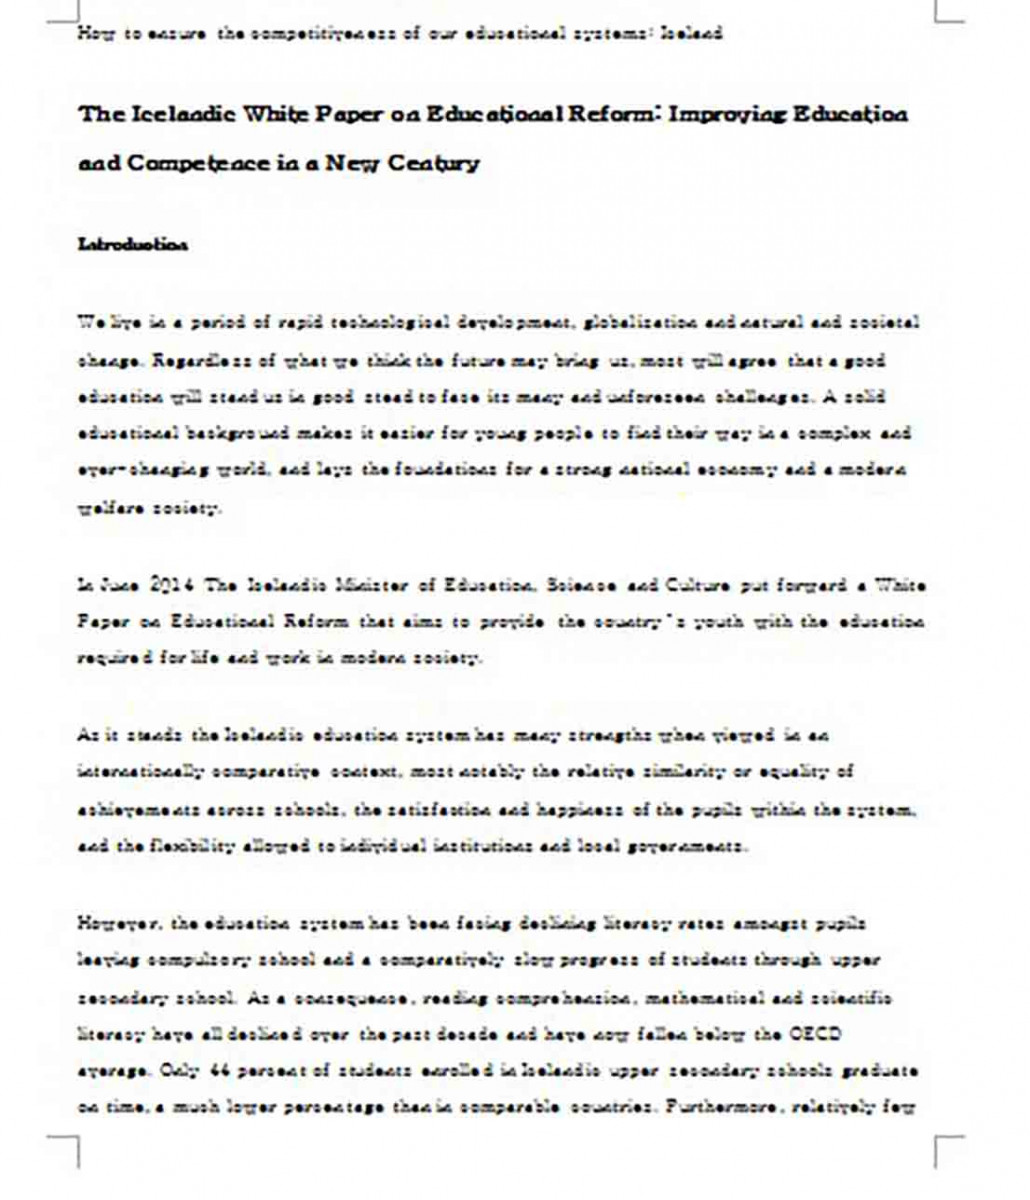 White Paper on Education Reform